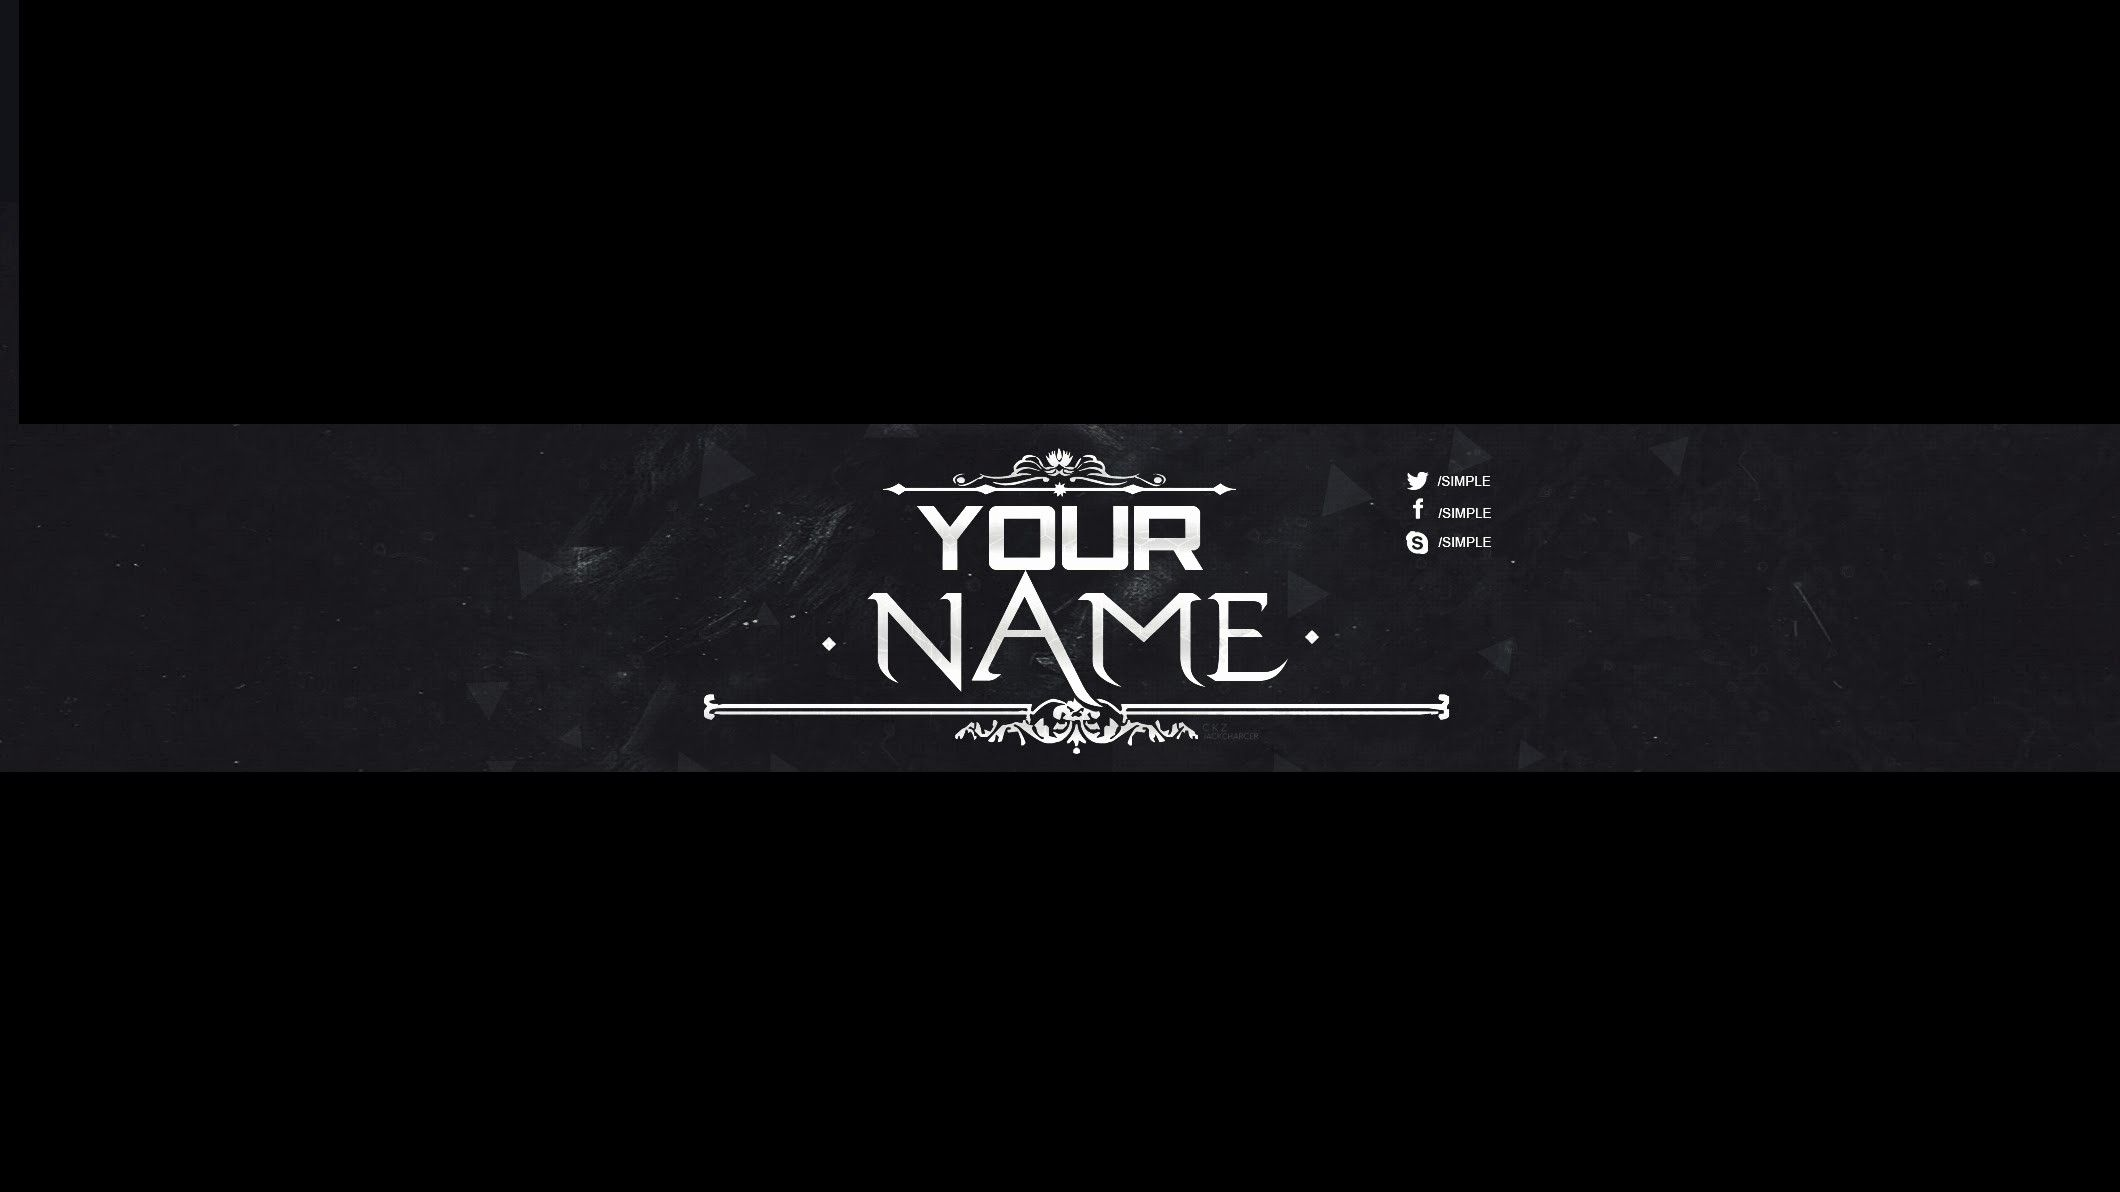 Youtube Banner Template Black 17 Outrageous Ideas For Your Youtube